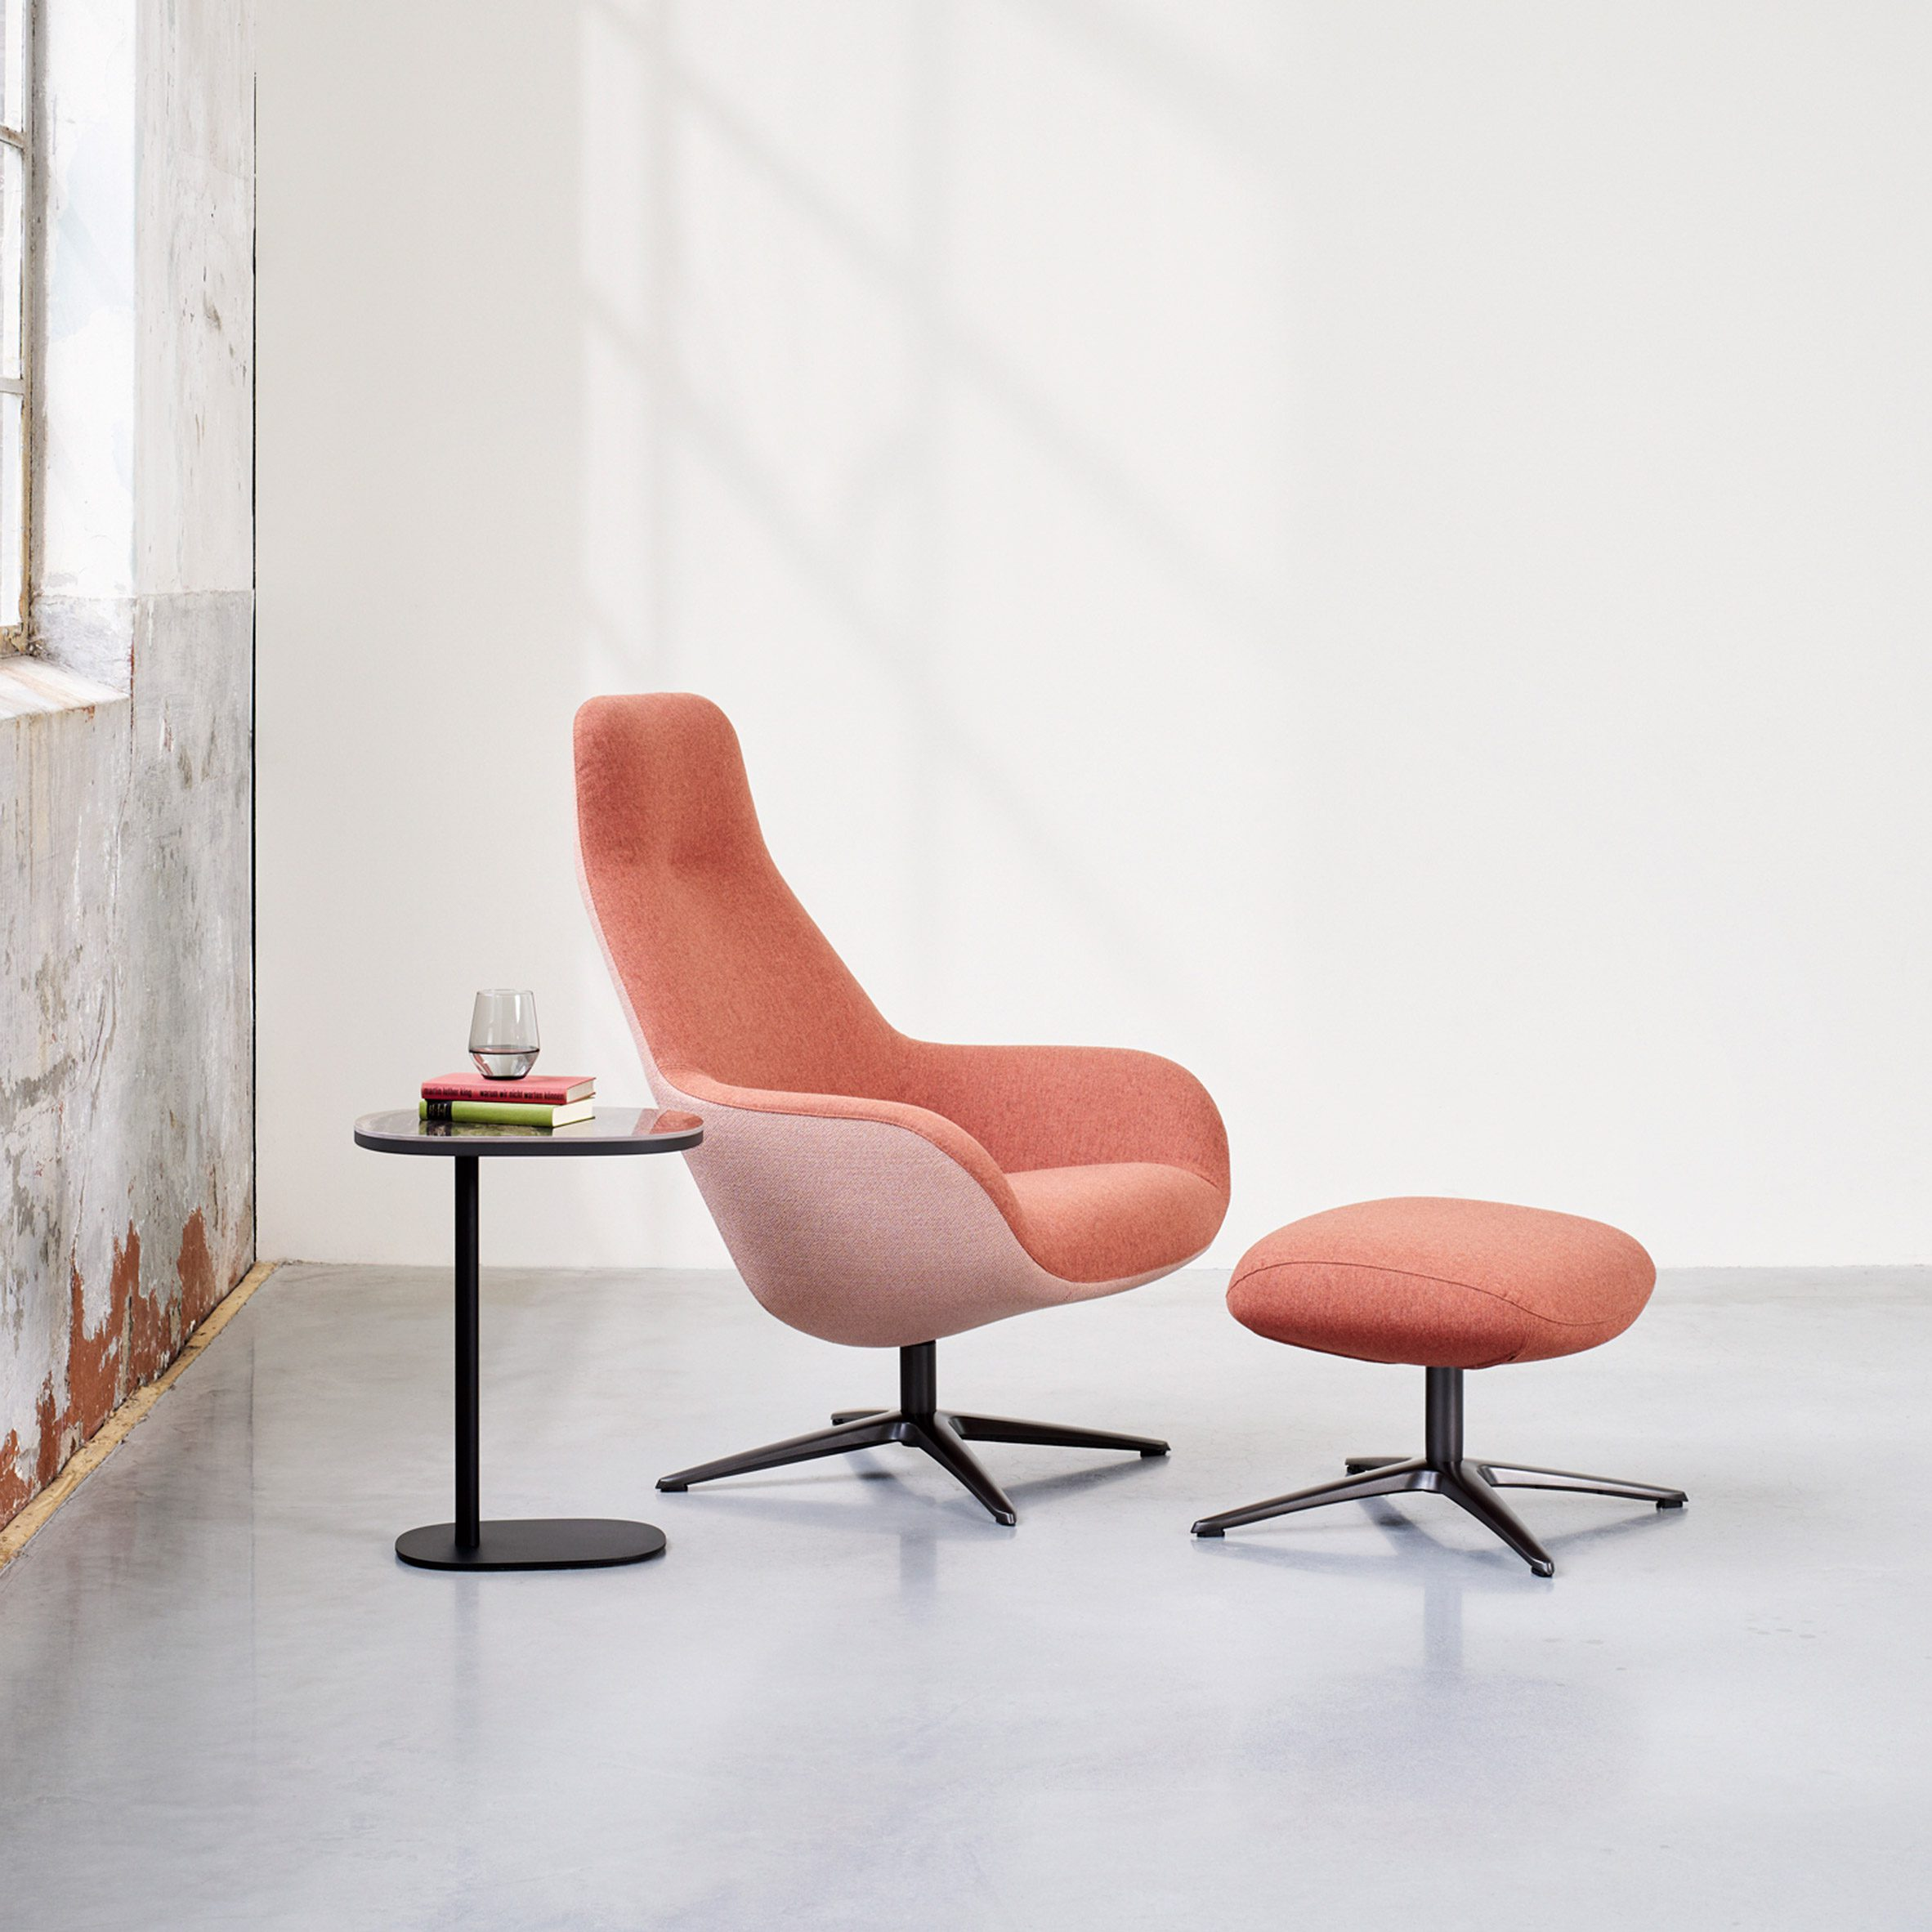 A pink high-backed LXR03 chair and footstool